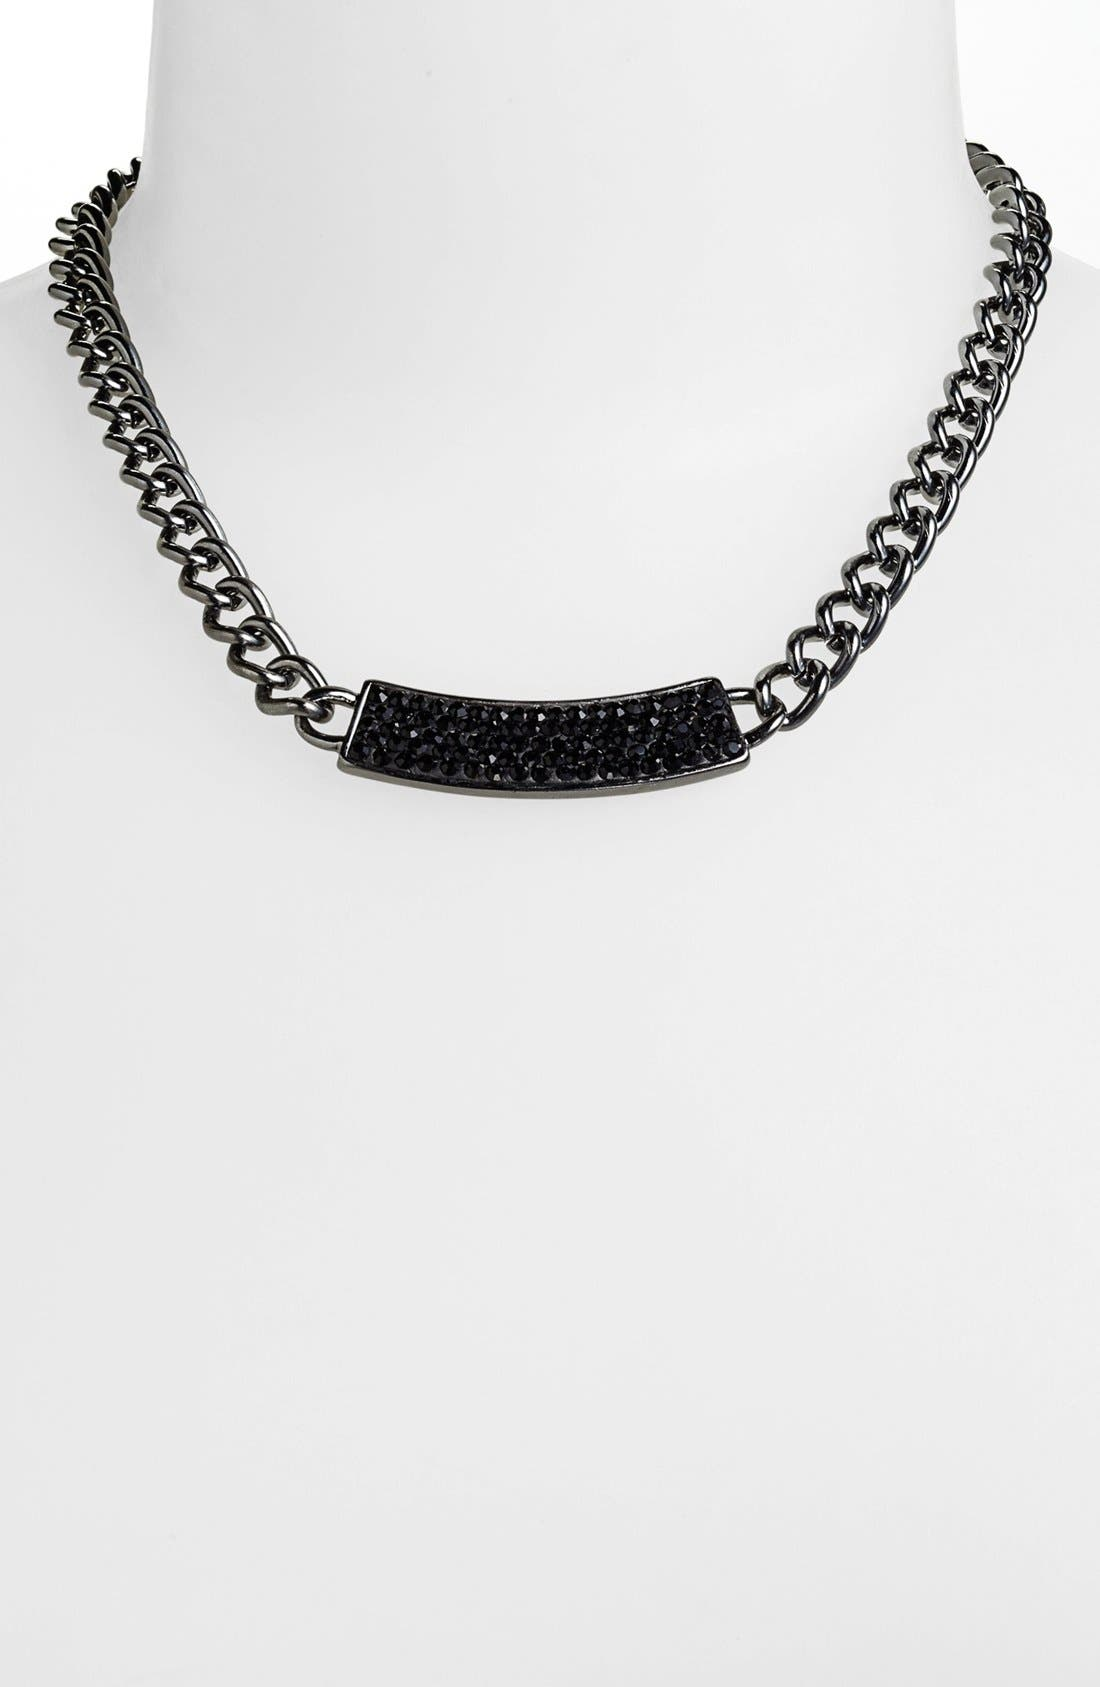 Main Image - Nordstrom 'All that Glitters' Pavé ID Plate Chain Necklace